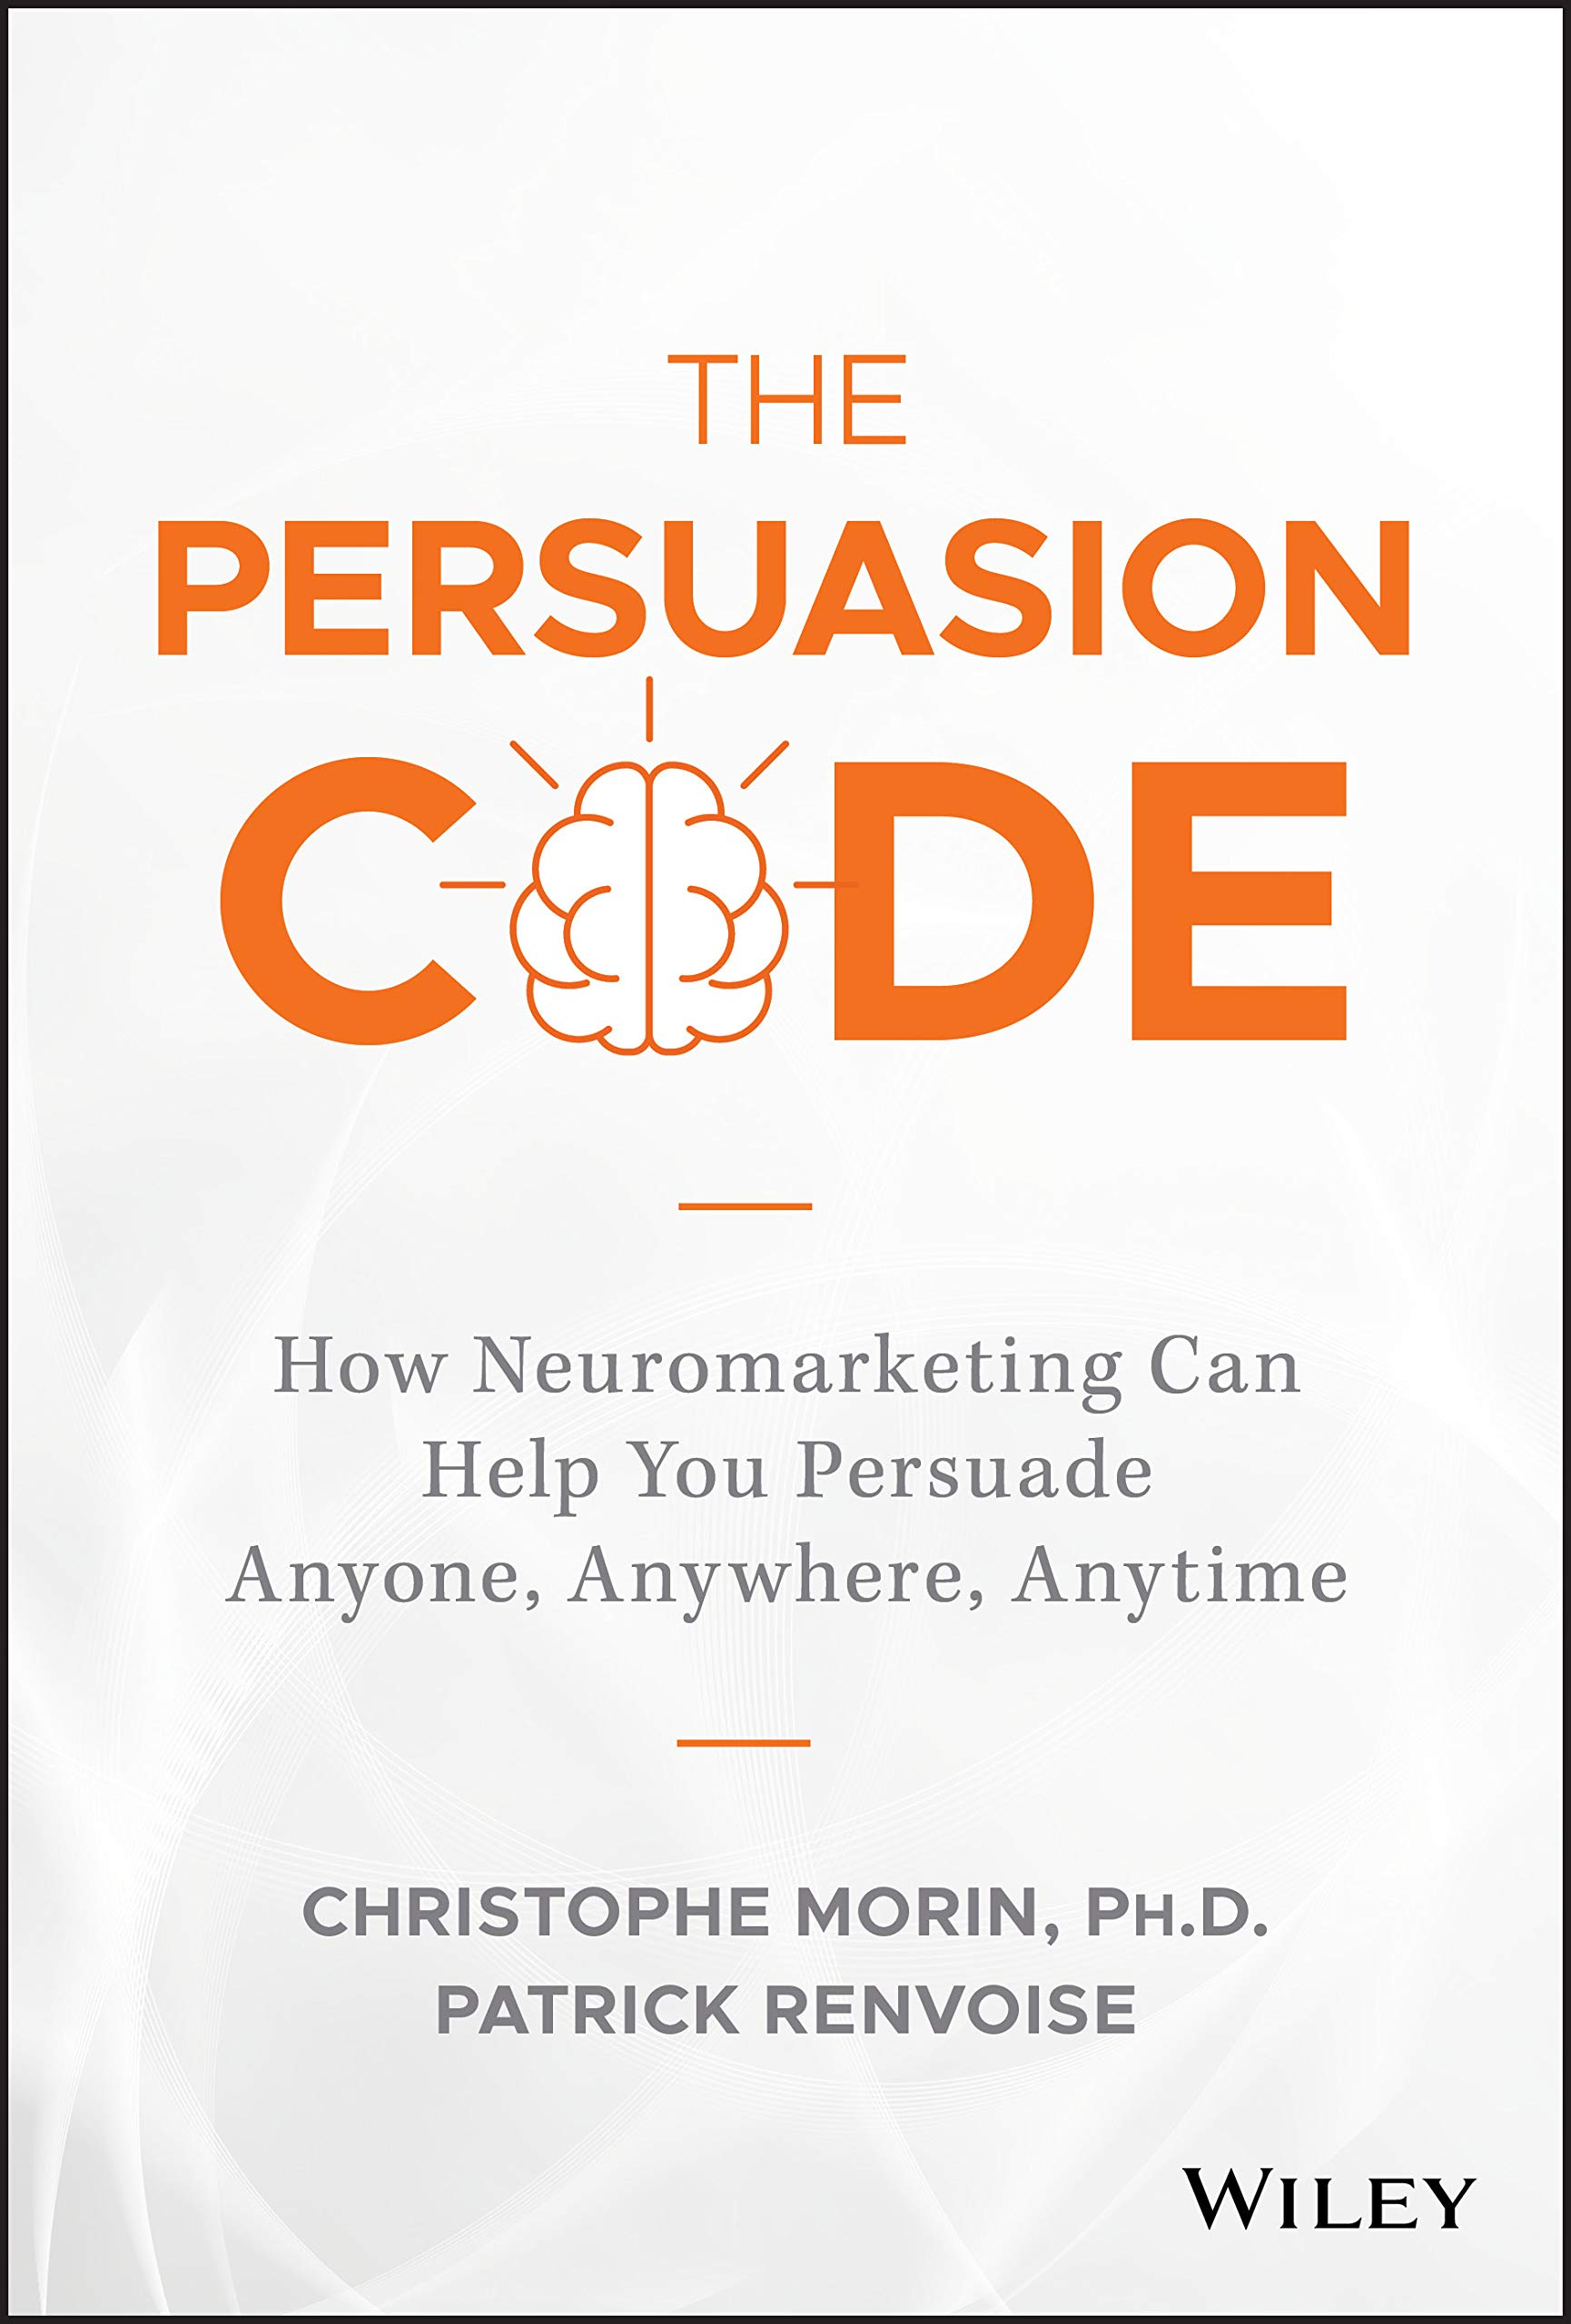 The Persuasion Code: How Neuromarketing Can Help You Persuade Anyone,  Anywhere, Anytime: Morin, Christophe, Renvoise, Patrick: 9781119440703:  Amazon.com: Books